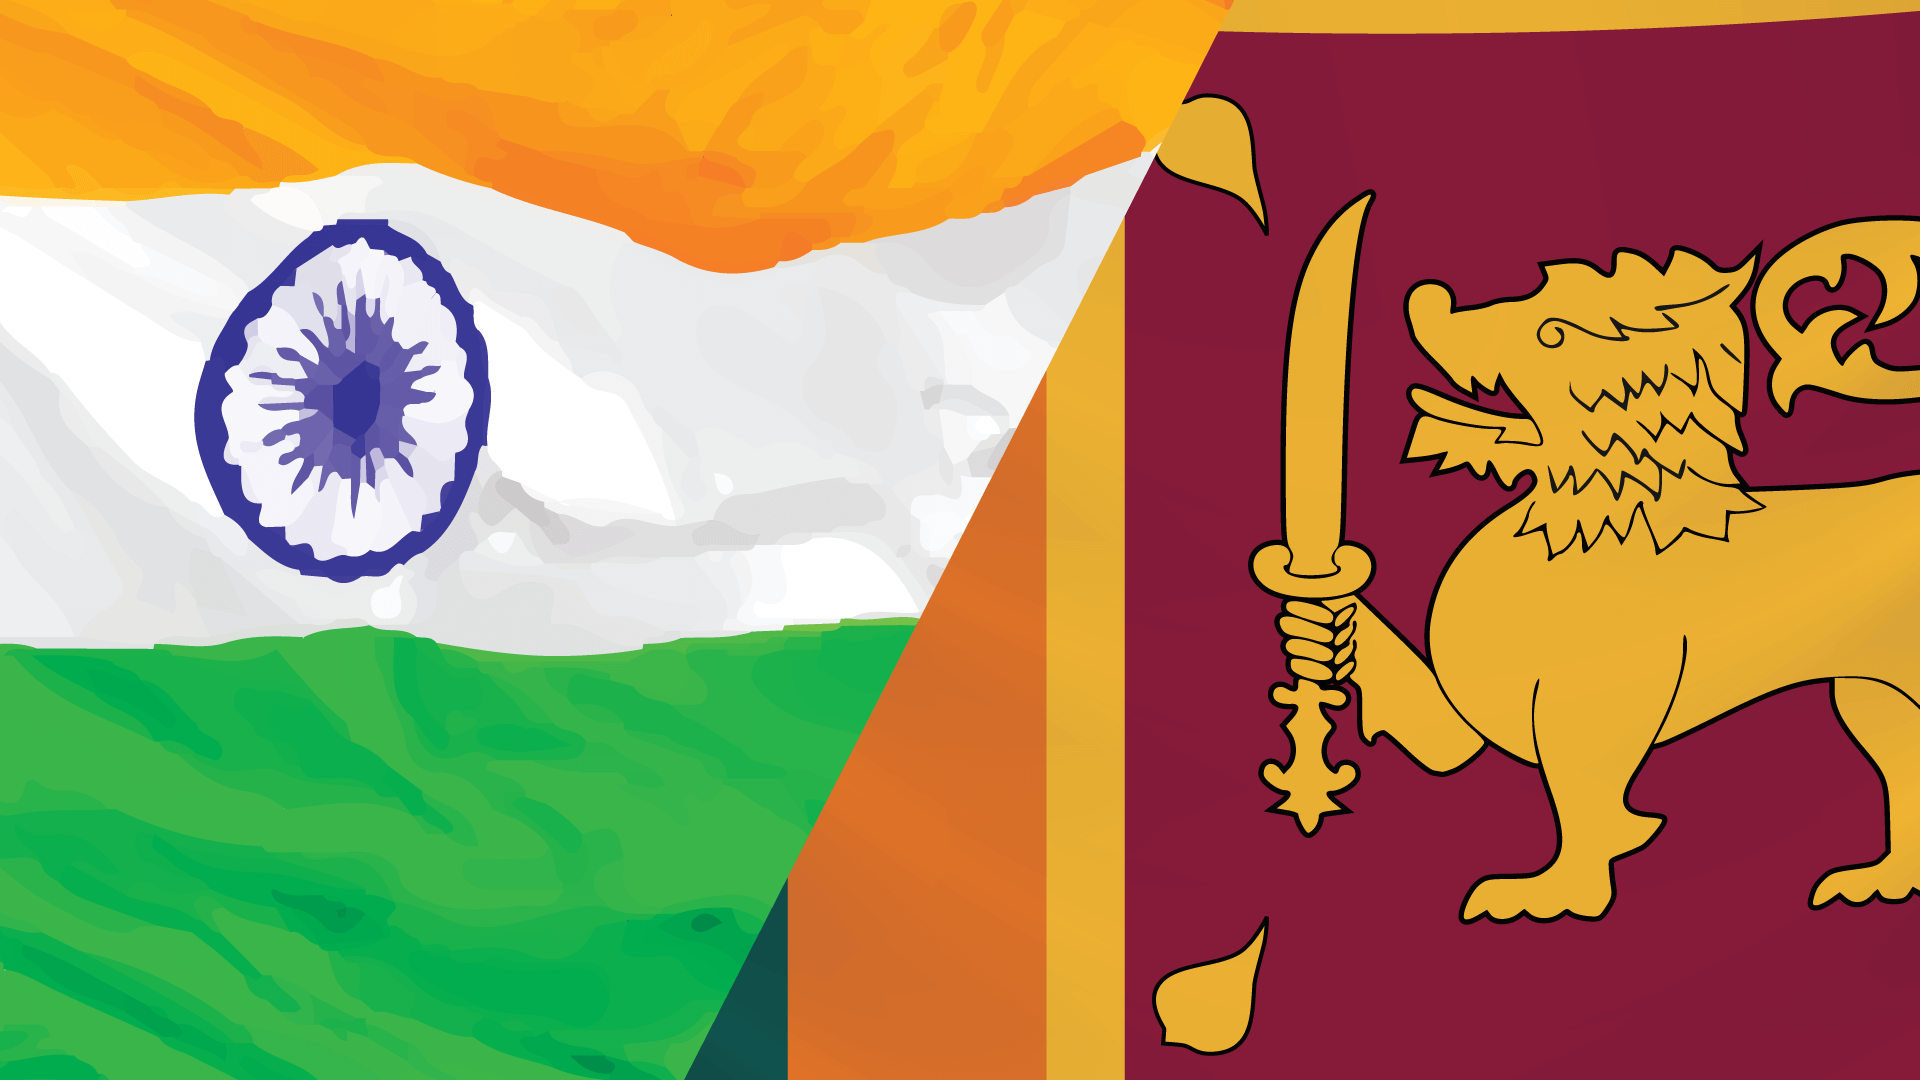 Sri Lanka to Receive 450 Million USD as Line of Credit From India